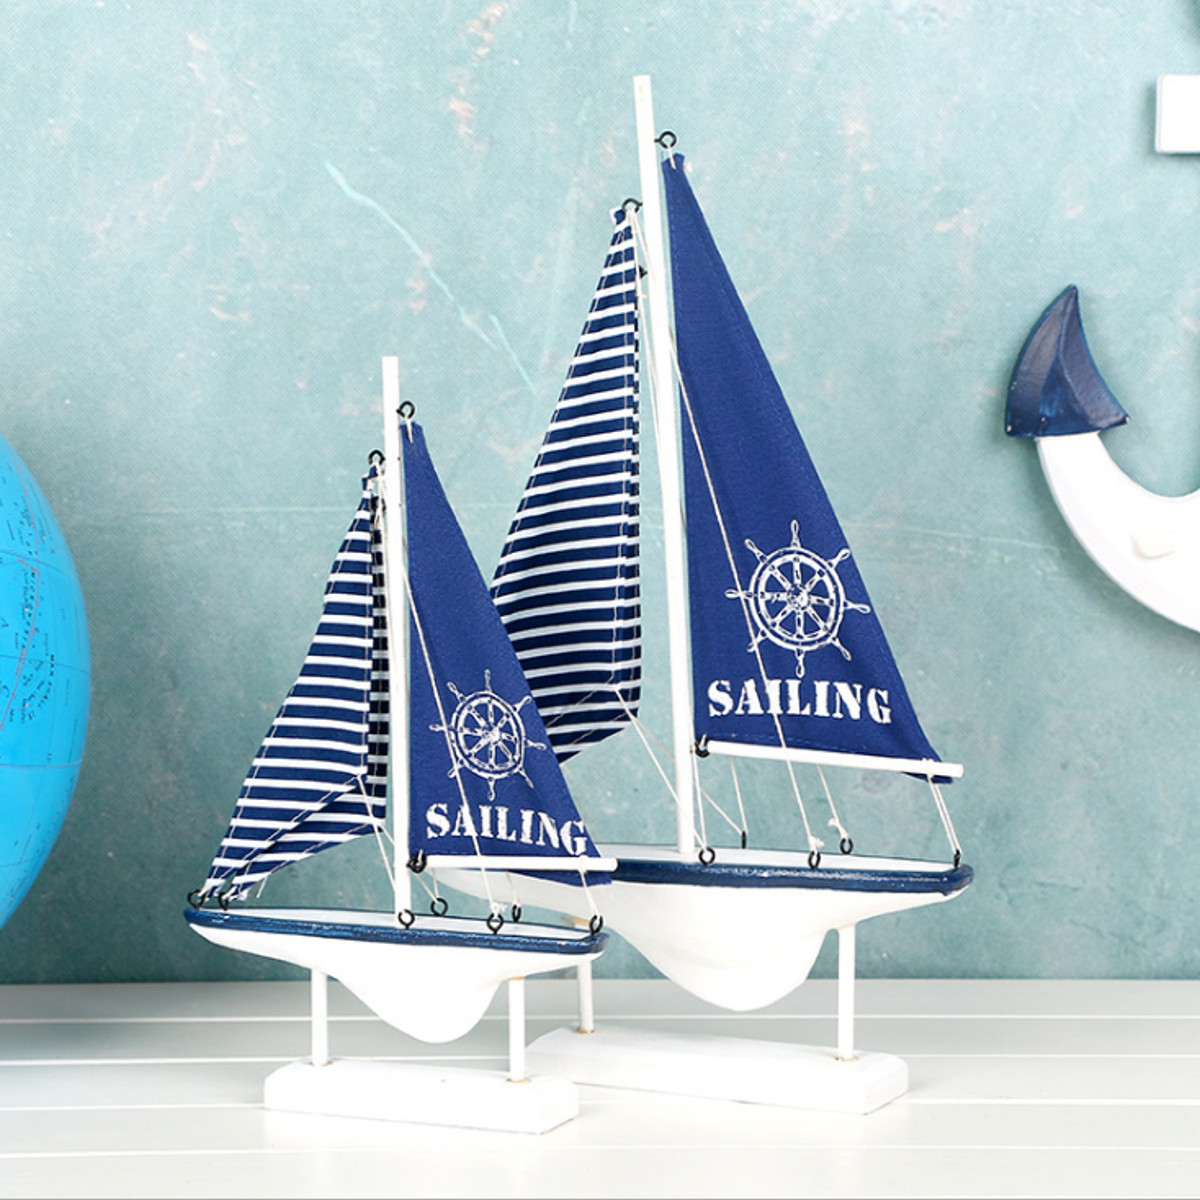 Ship-Assembly-Model-DIY-Kit-Wooden-Sailing-Boat-Decor-Wood-Toy-Gift-Collectables thumbnail 3